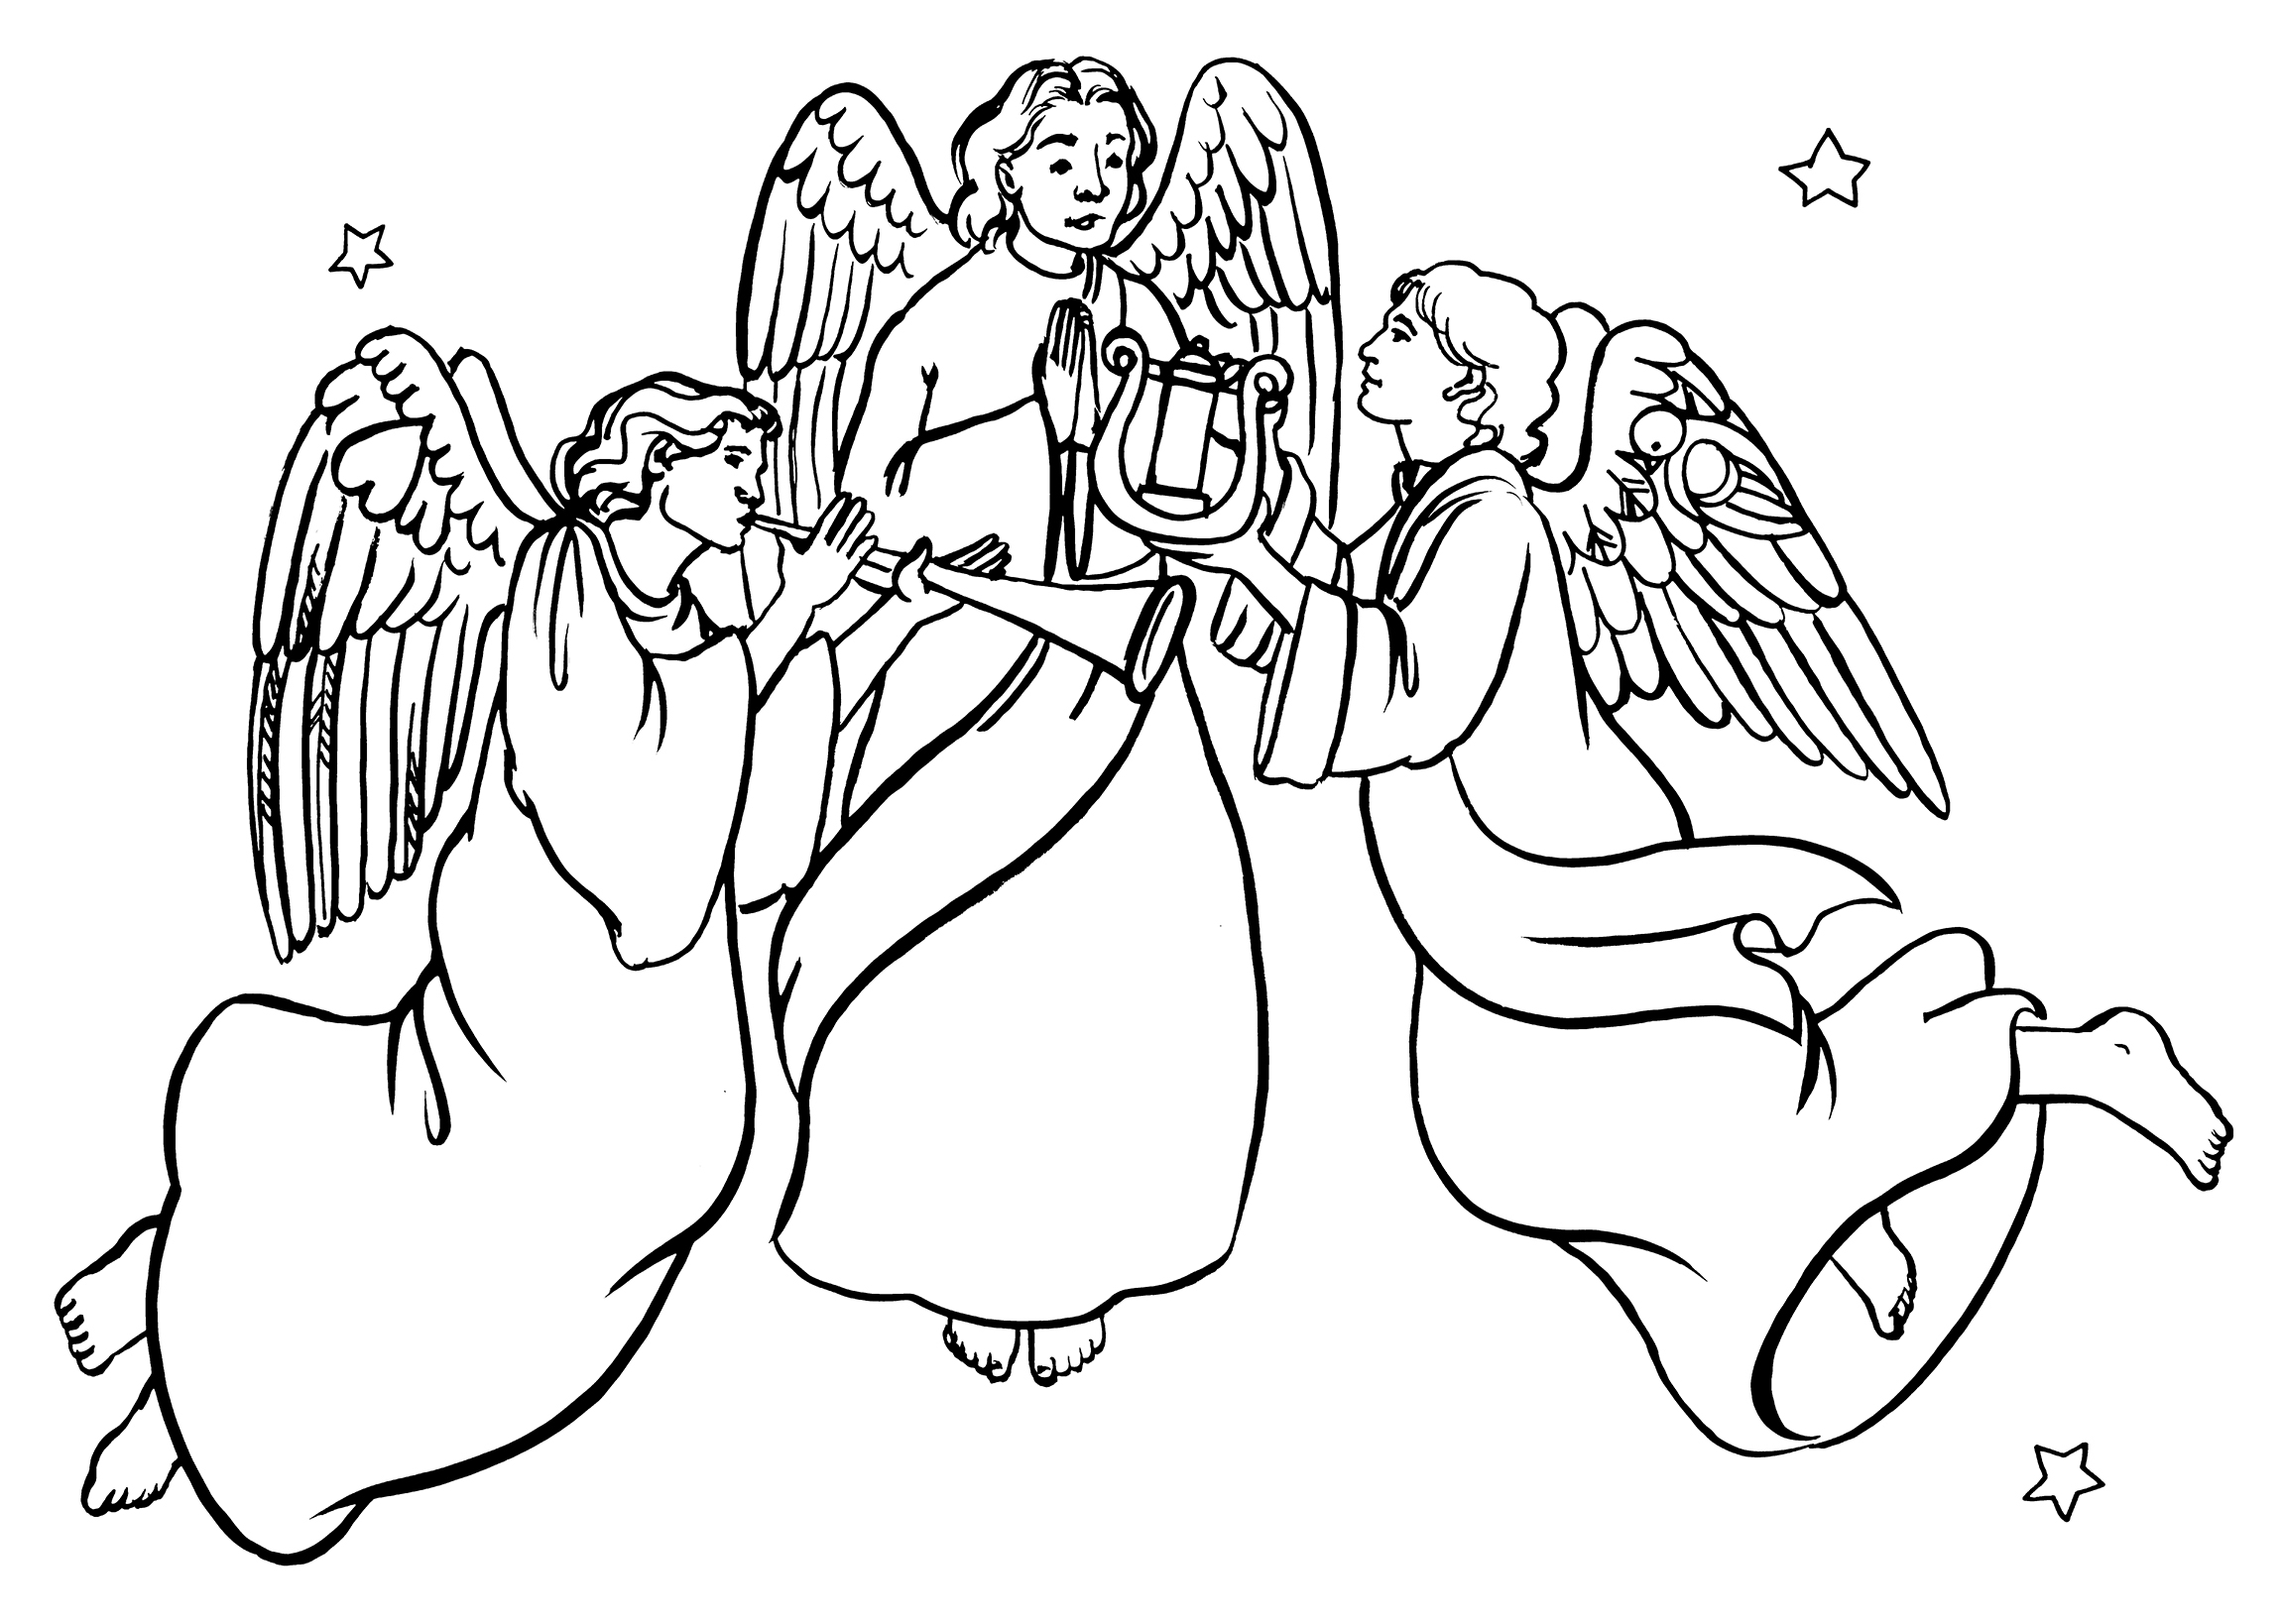 heavenly host of angels coloring pages | Angels clipart host, Angels host Transparent FREE for ...